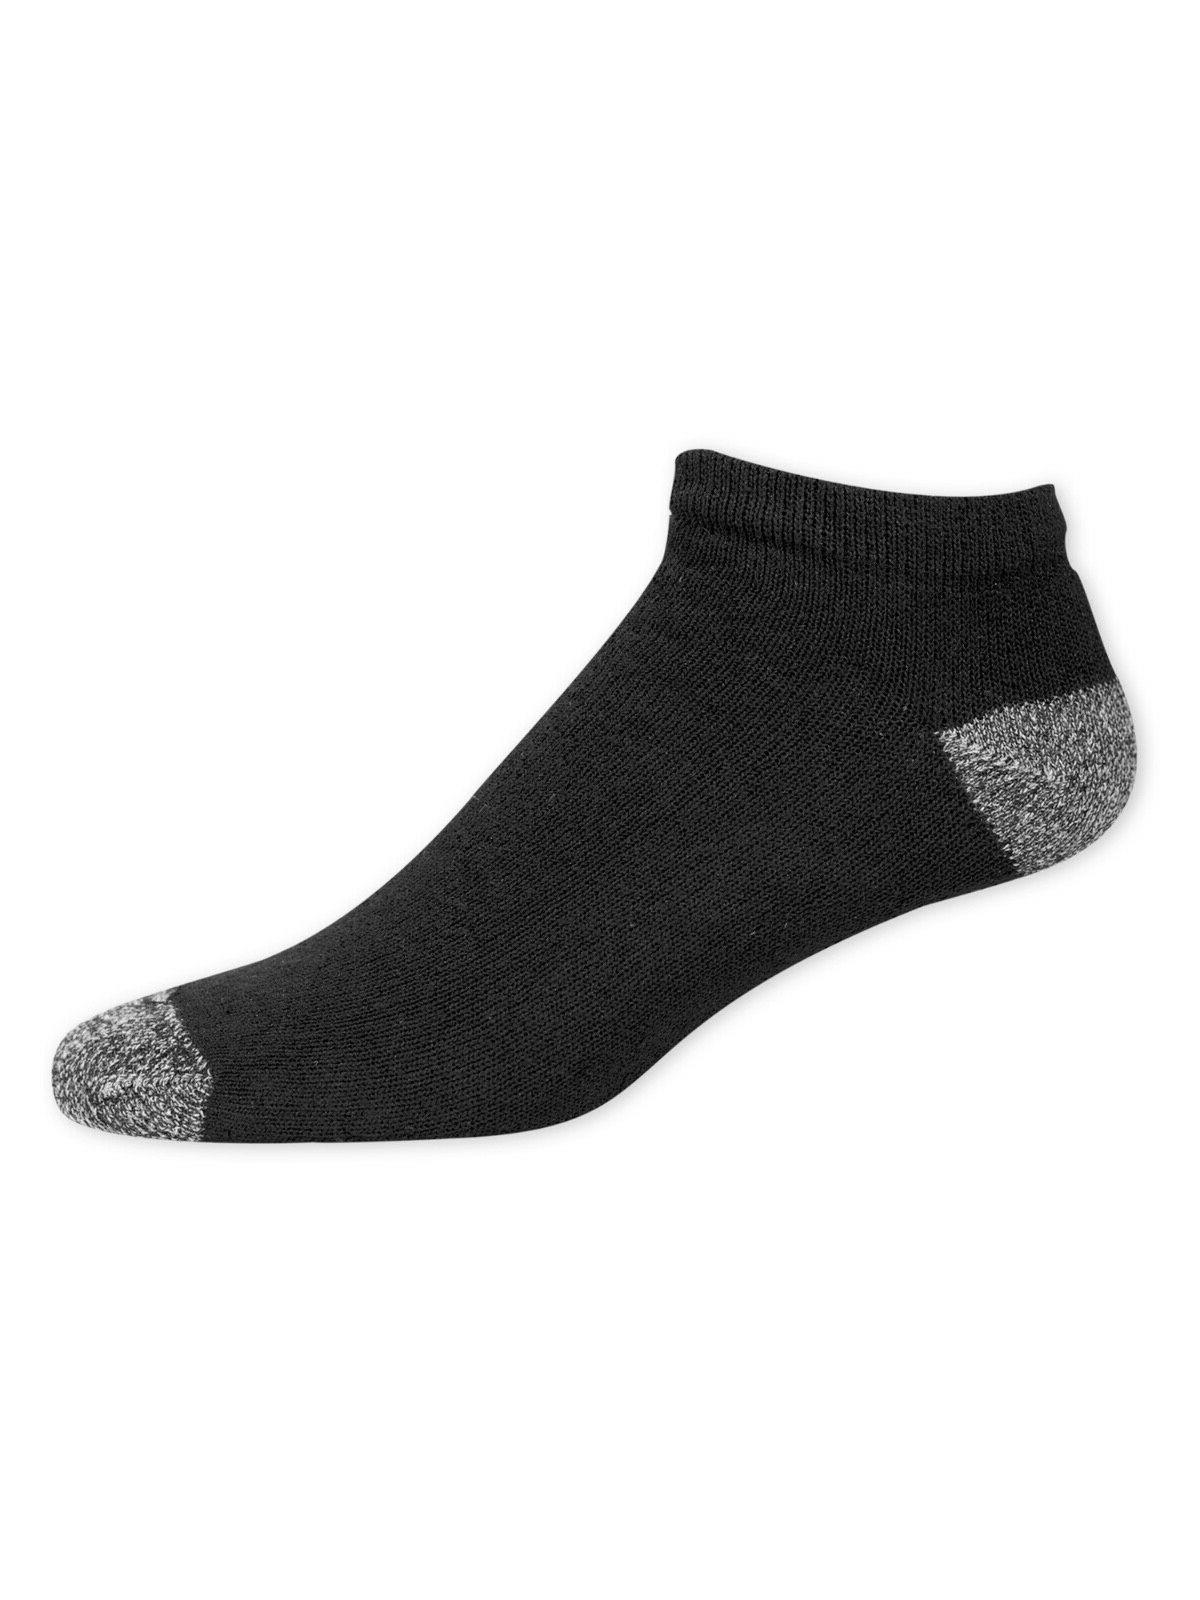 Athletic Works Men's Big and Tall Low Cut Socks 9 Pack